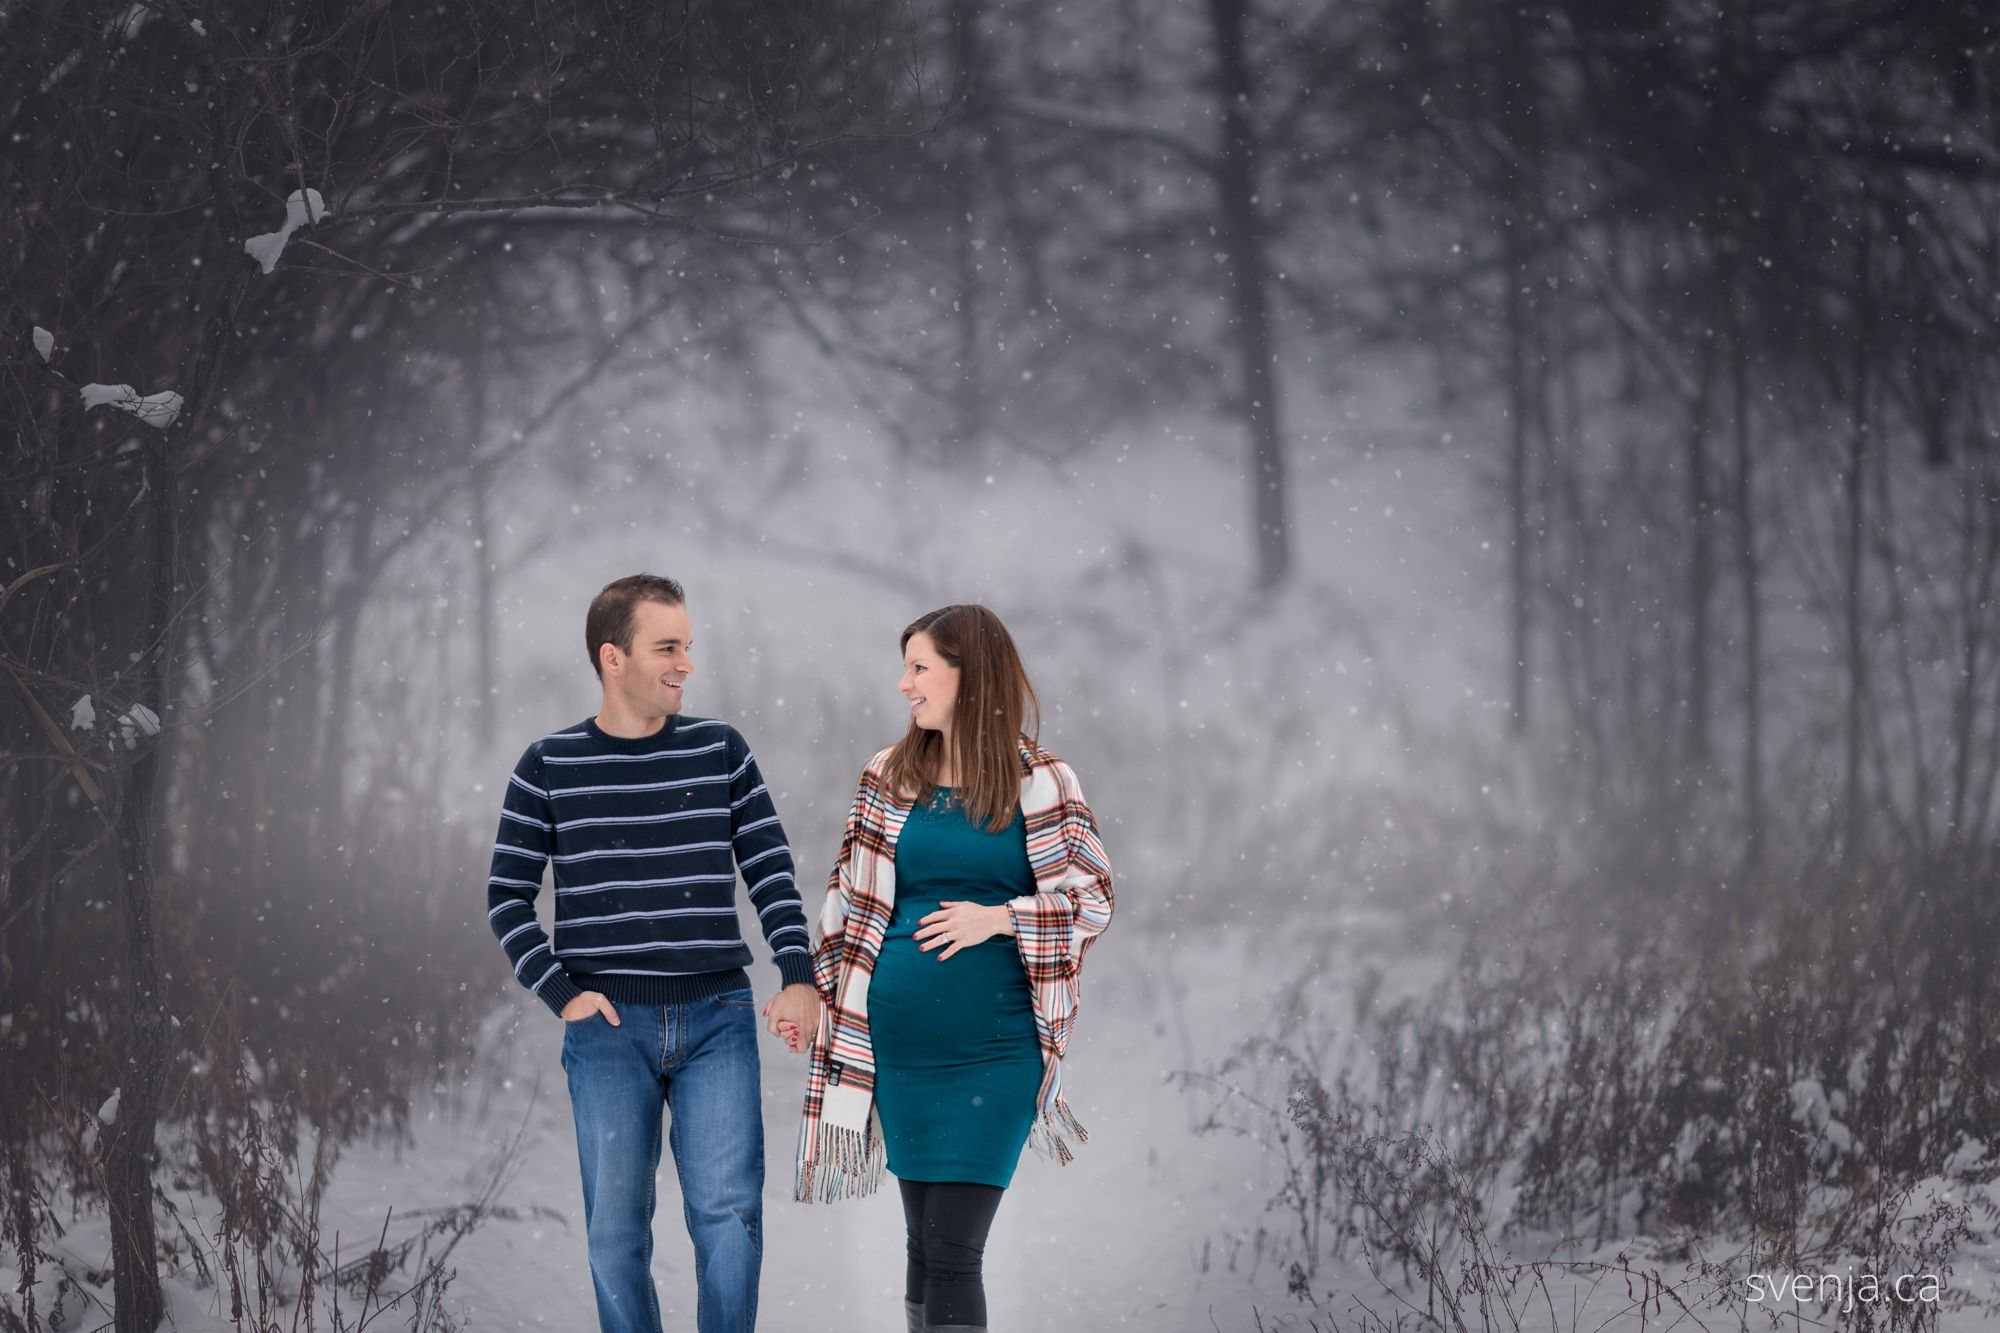 an expecting couple walked together through a snowy forest